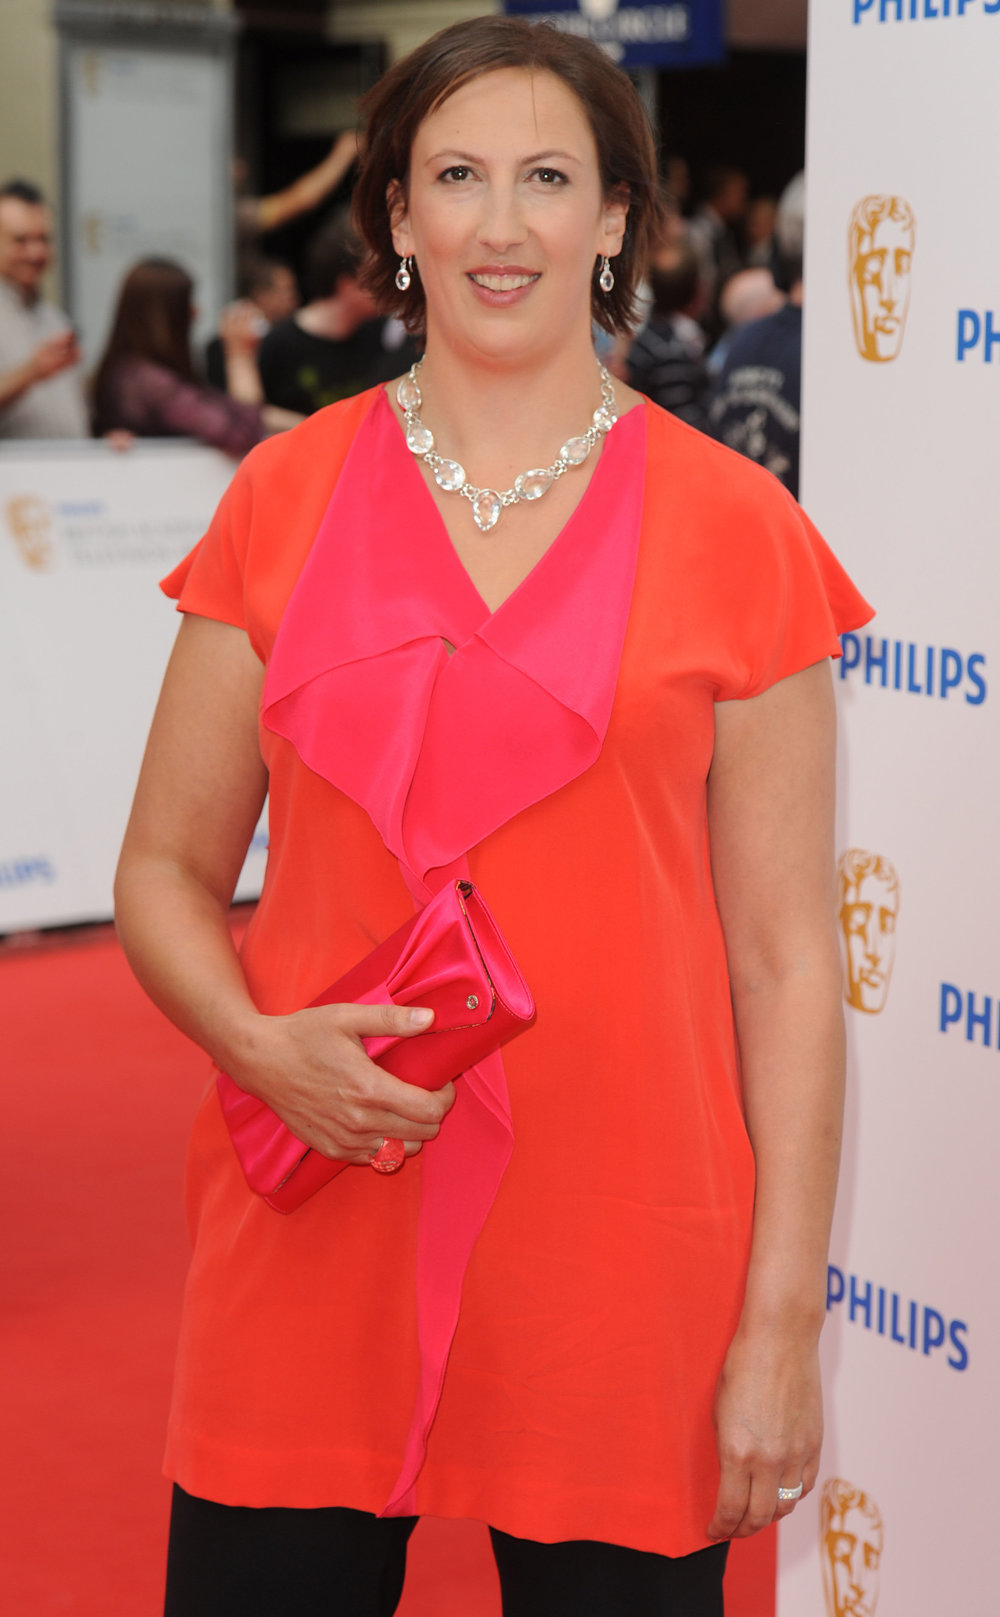 Miranda Hart Reveals How She Channelled Feelings Of Low Mood Into Her Exciting New Project Miranda Hart Reveals How She Channelled Feelings Of Low Mood Into Her Exciting New Project new pictures